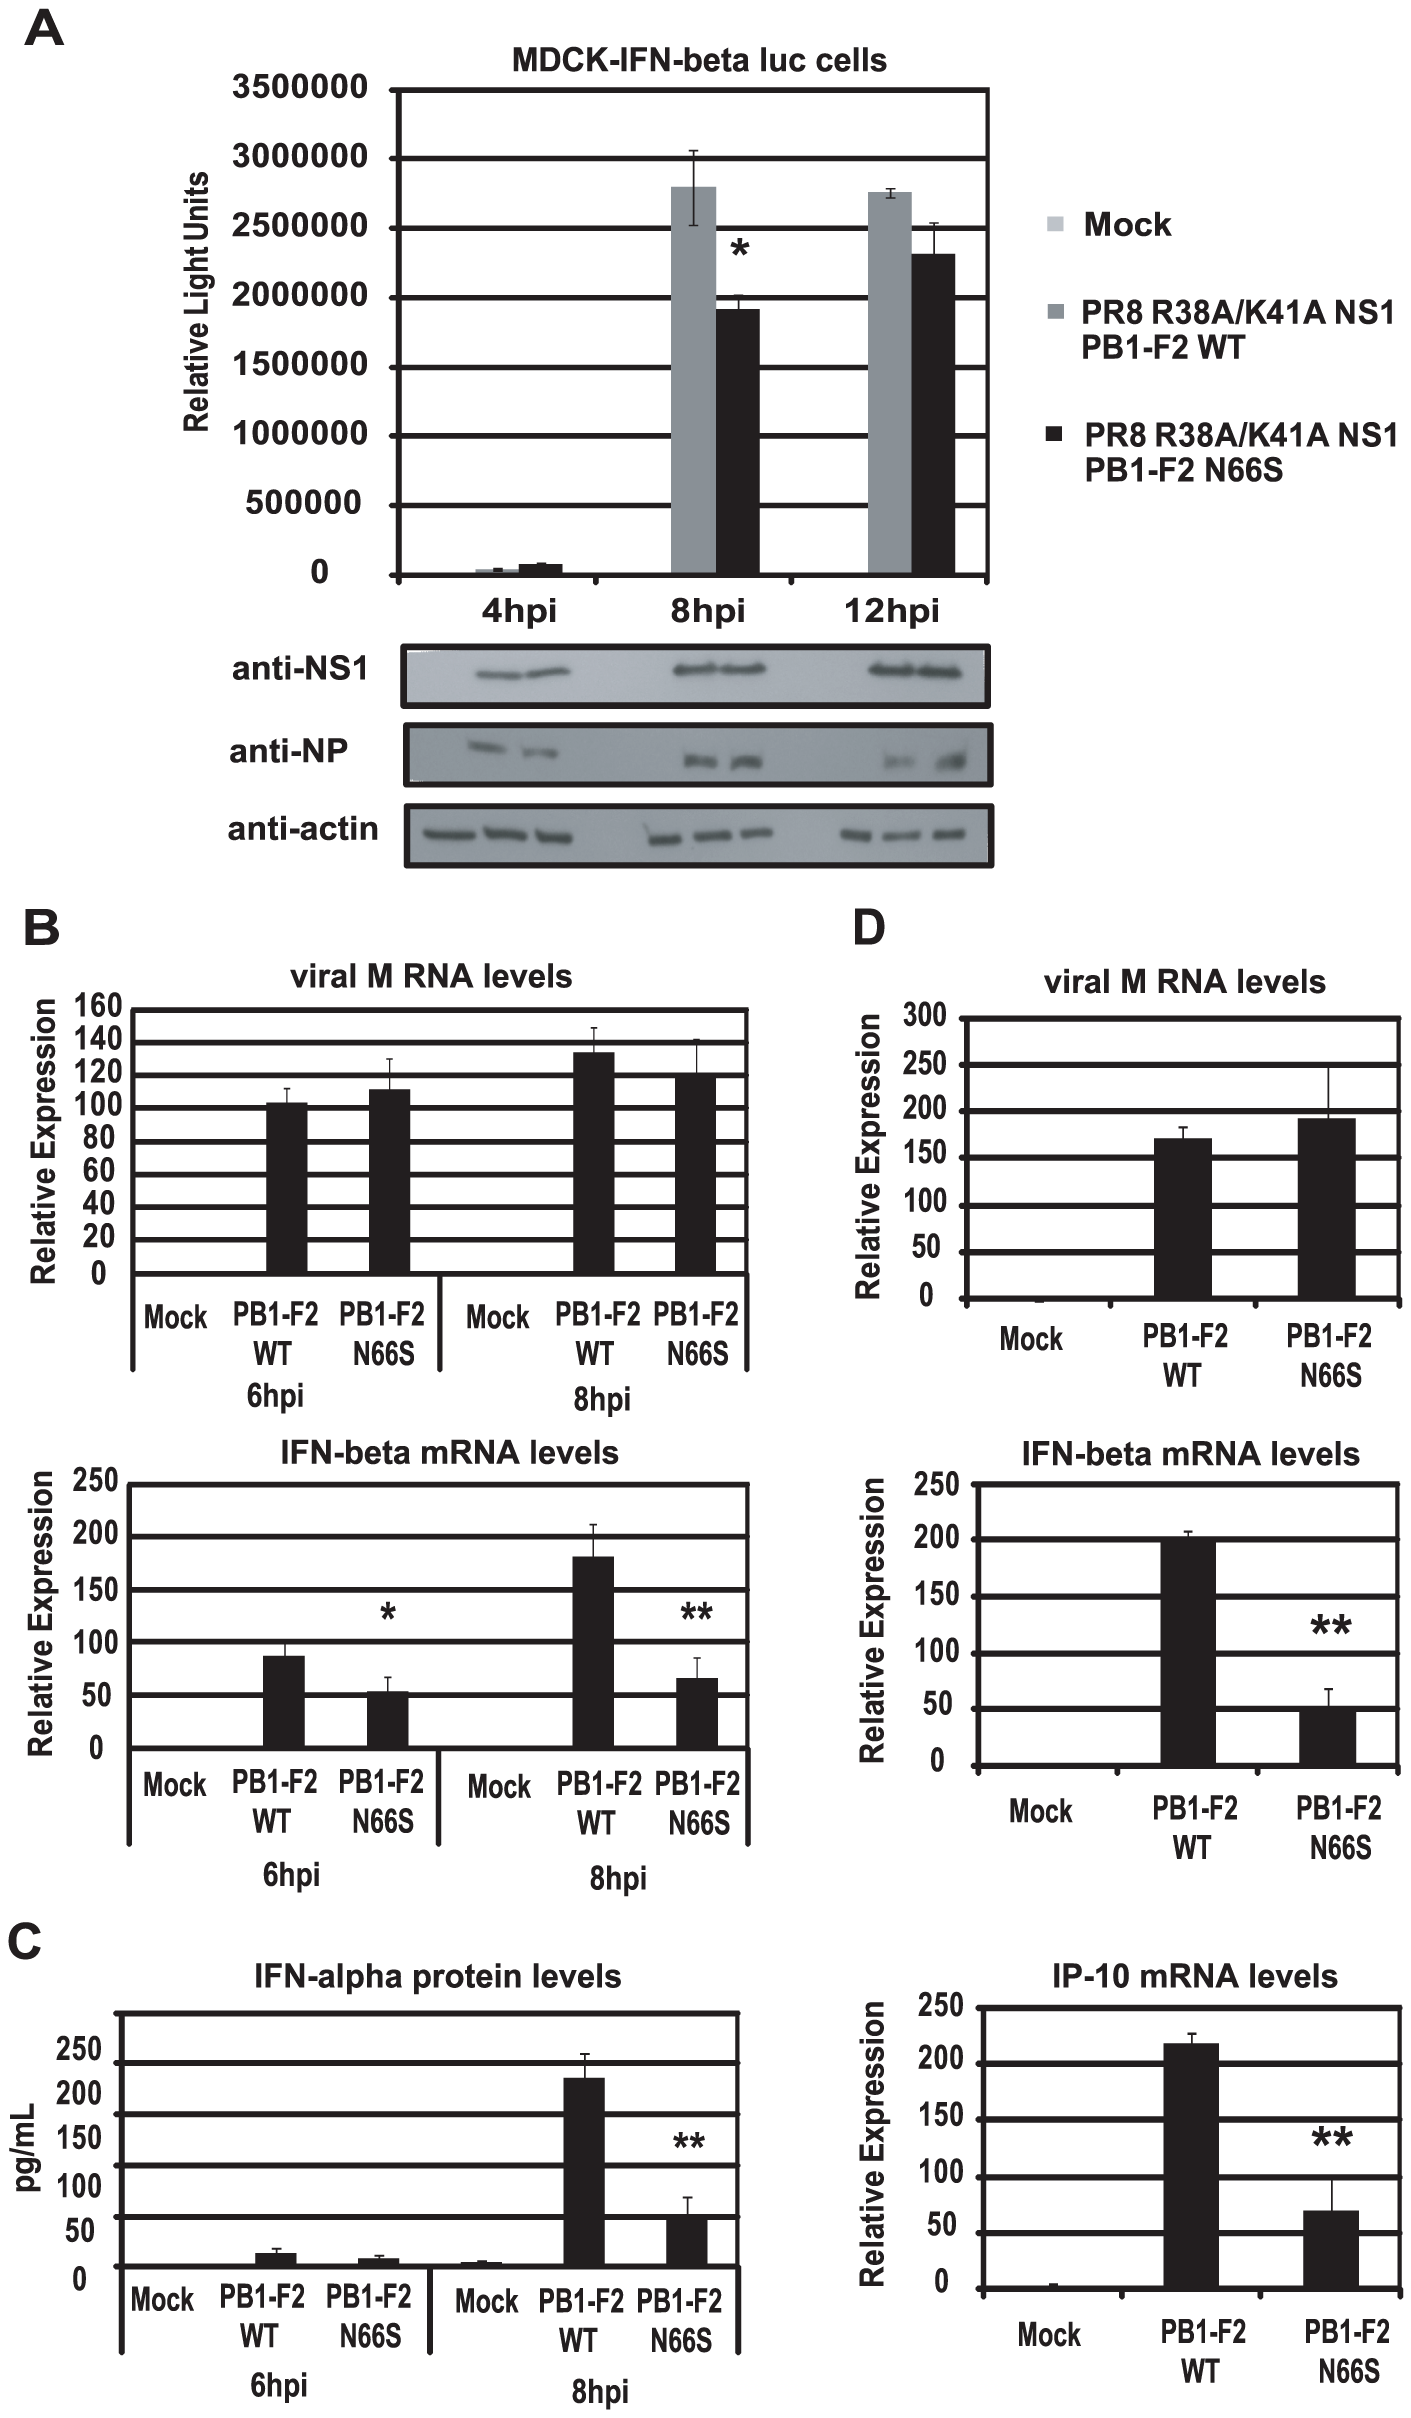 PB1-F2 N66S reduces IFN induction by a dsRNA and TRIM25 binding mutant NS1 influenza virus.